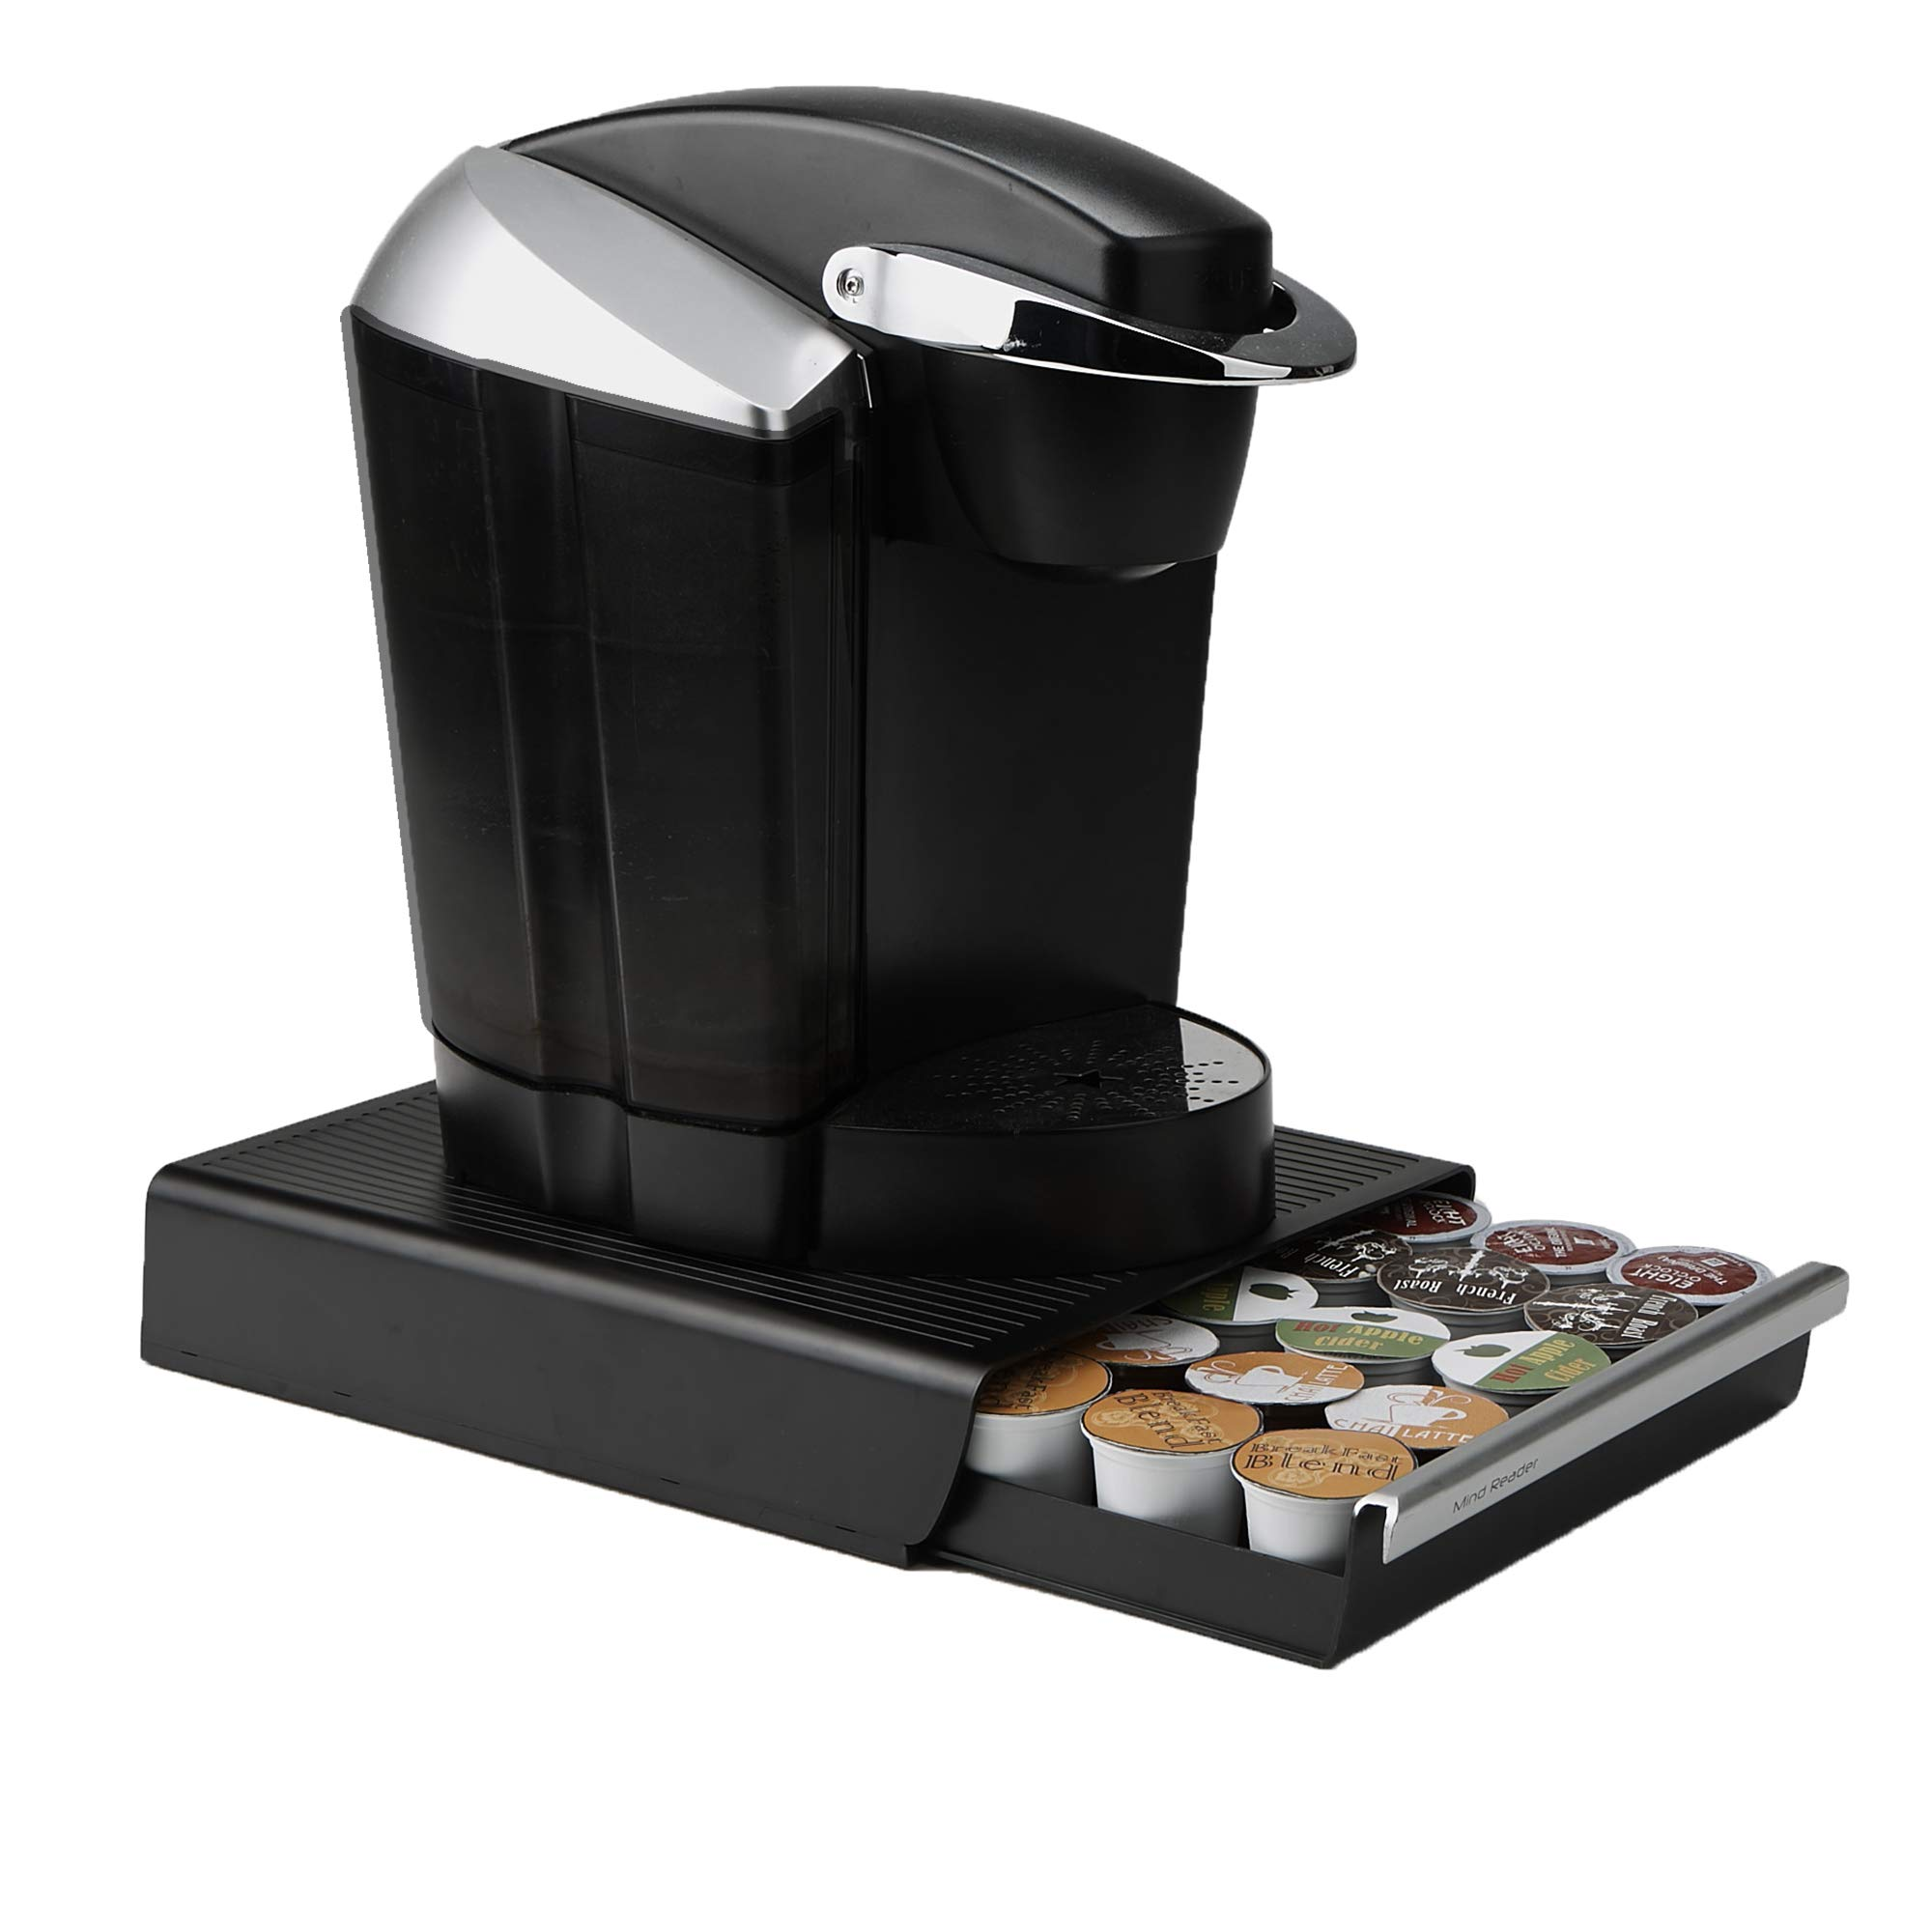 Mind Reader Coffee Pod Storage Drawer for K-Cups, Verismo, Dolce Gusto, Holds 30 K-Cups, 35 CBTL, Verismo, Dolce Gusto, Black by Mind Reader